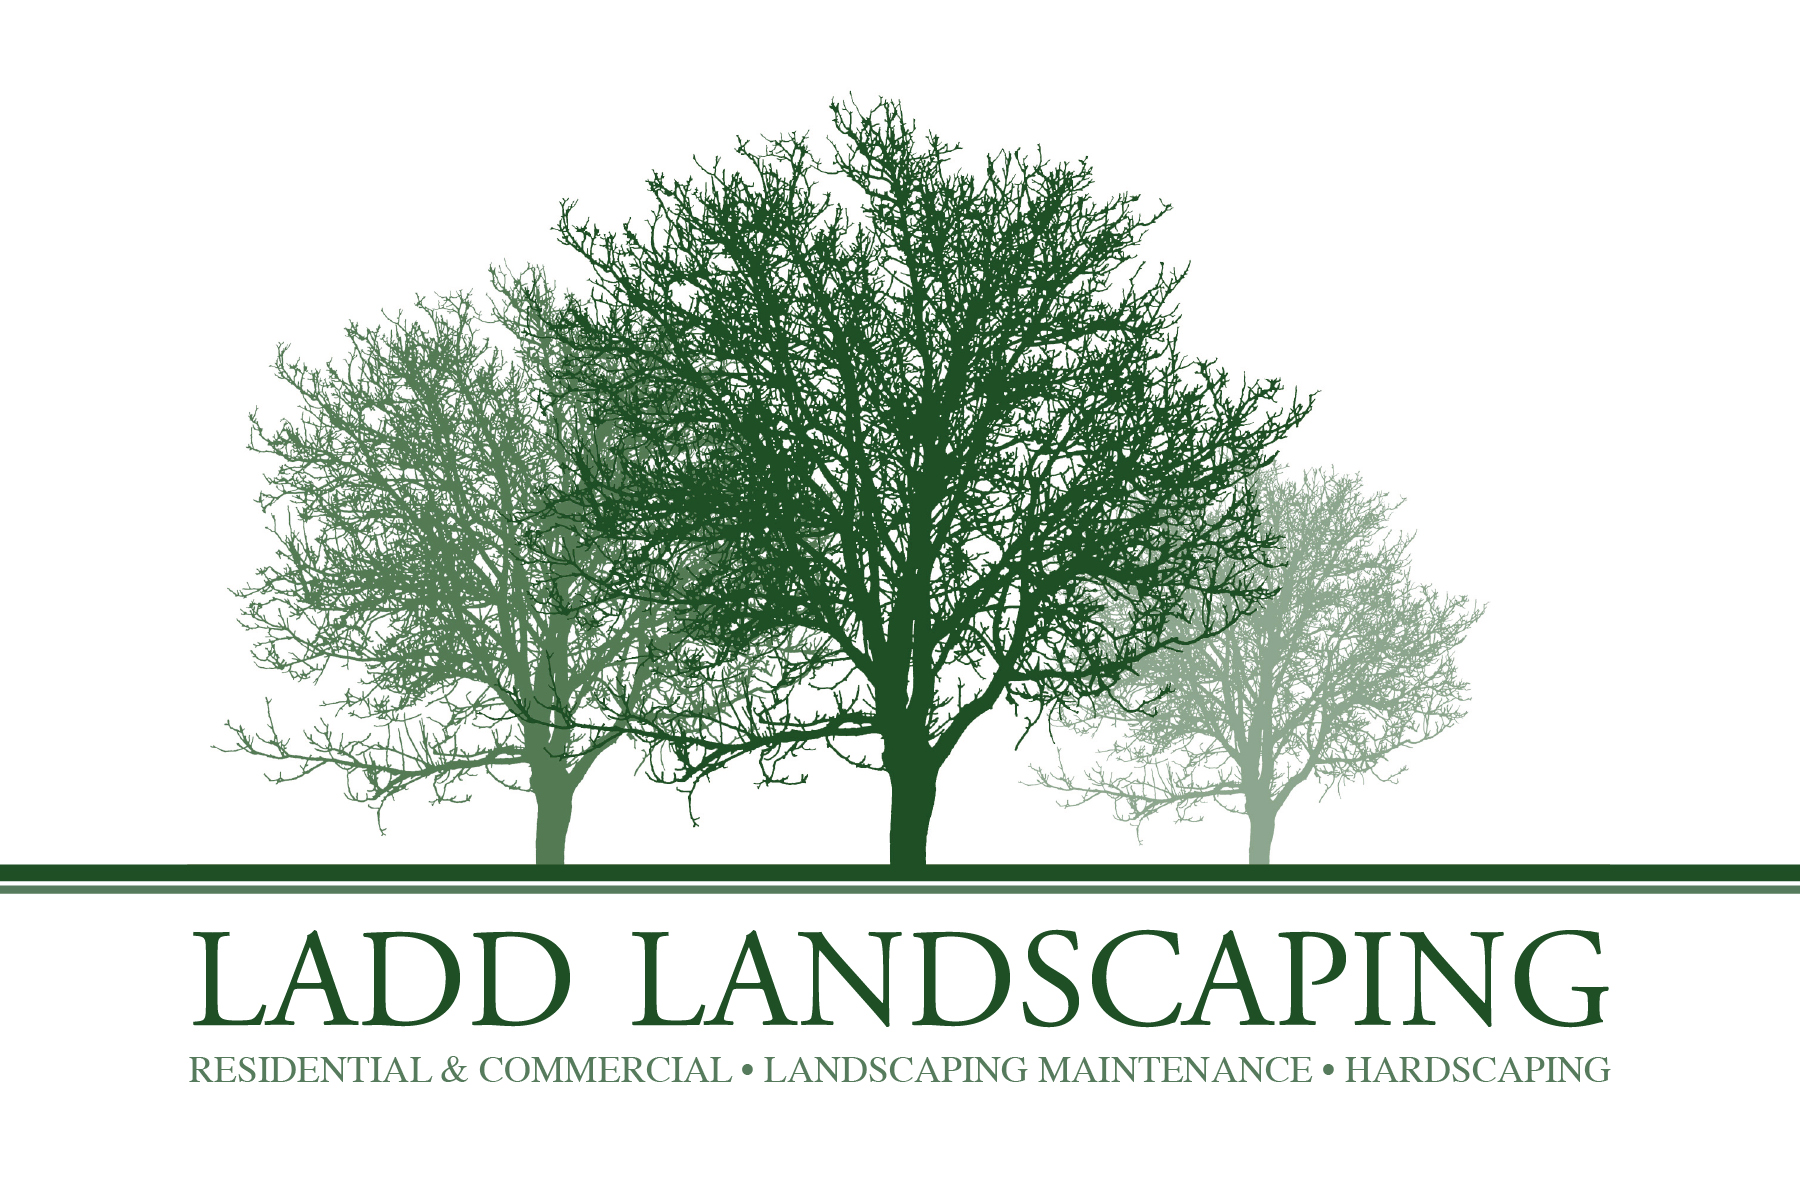 Landscaping clipart for design.